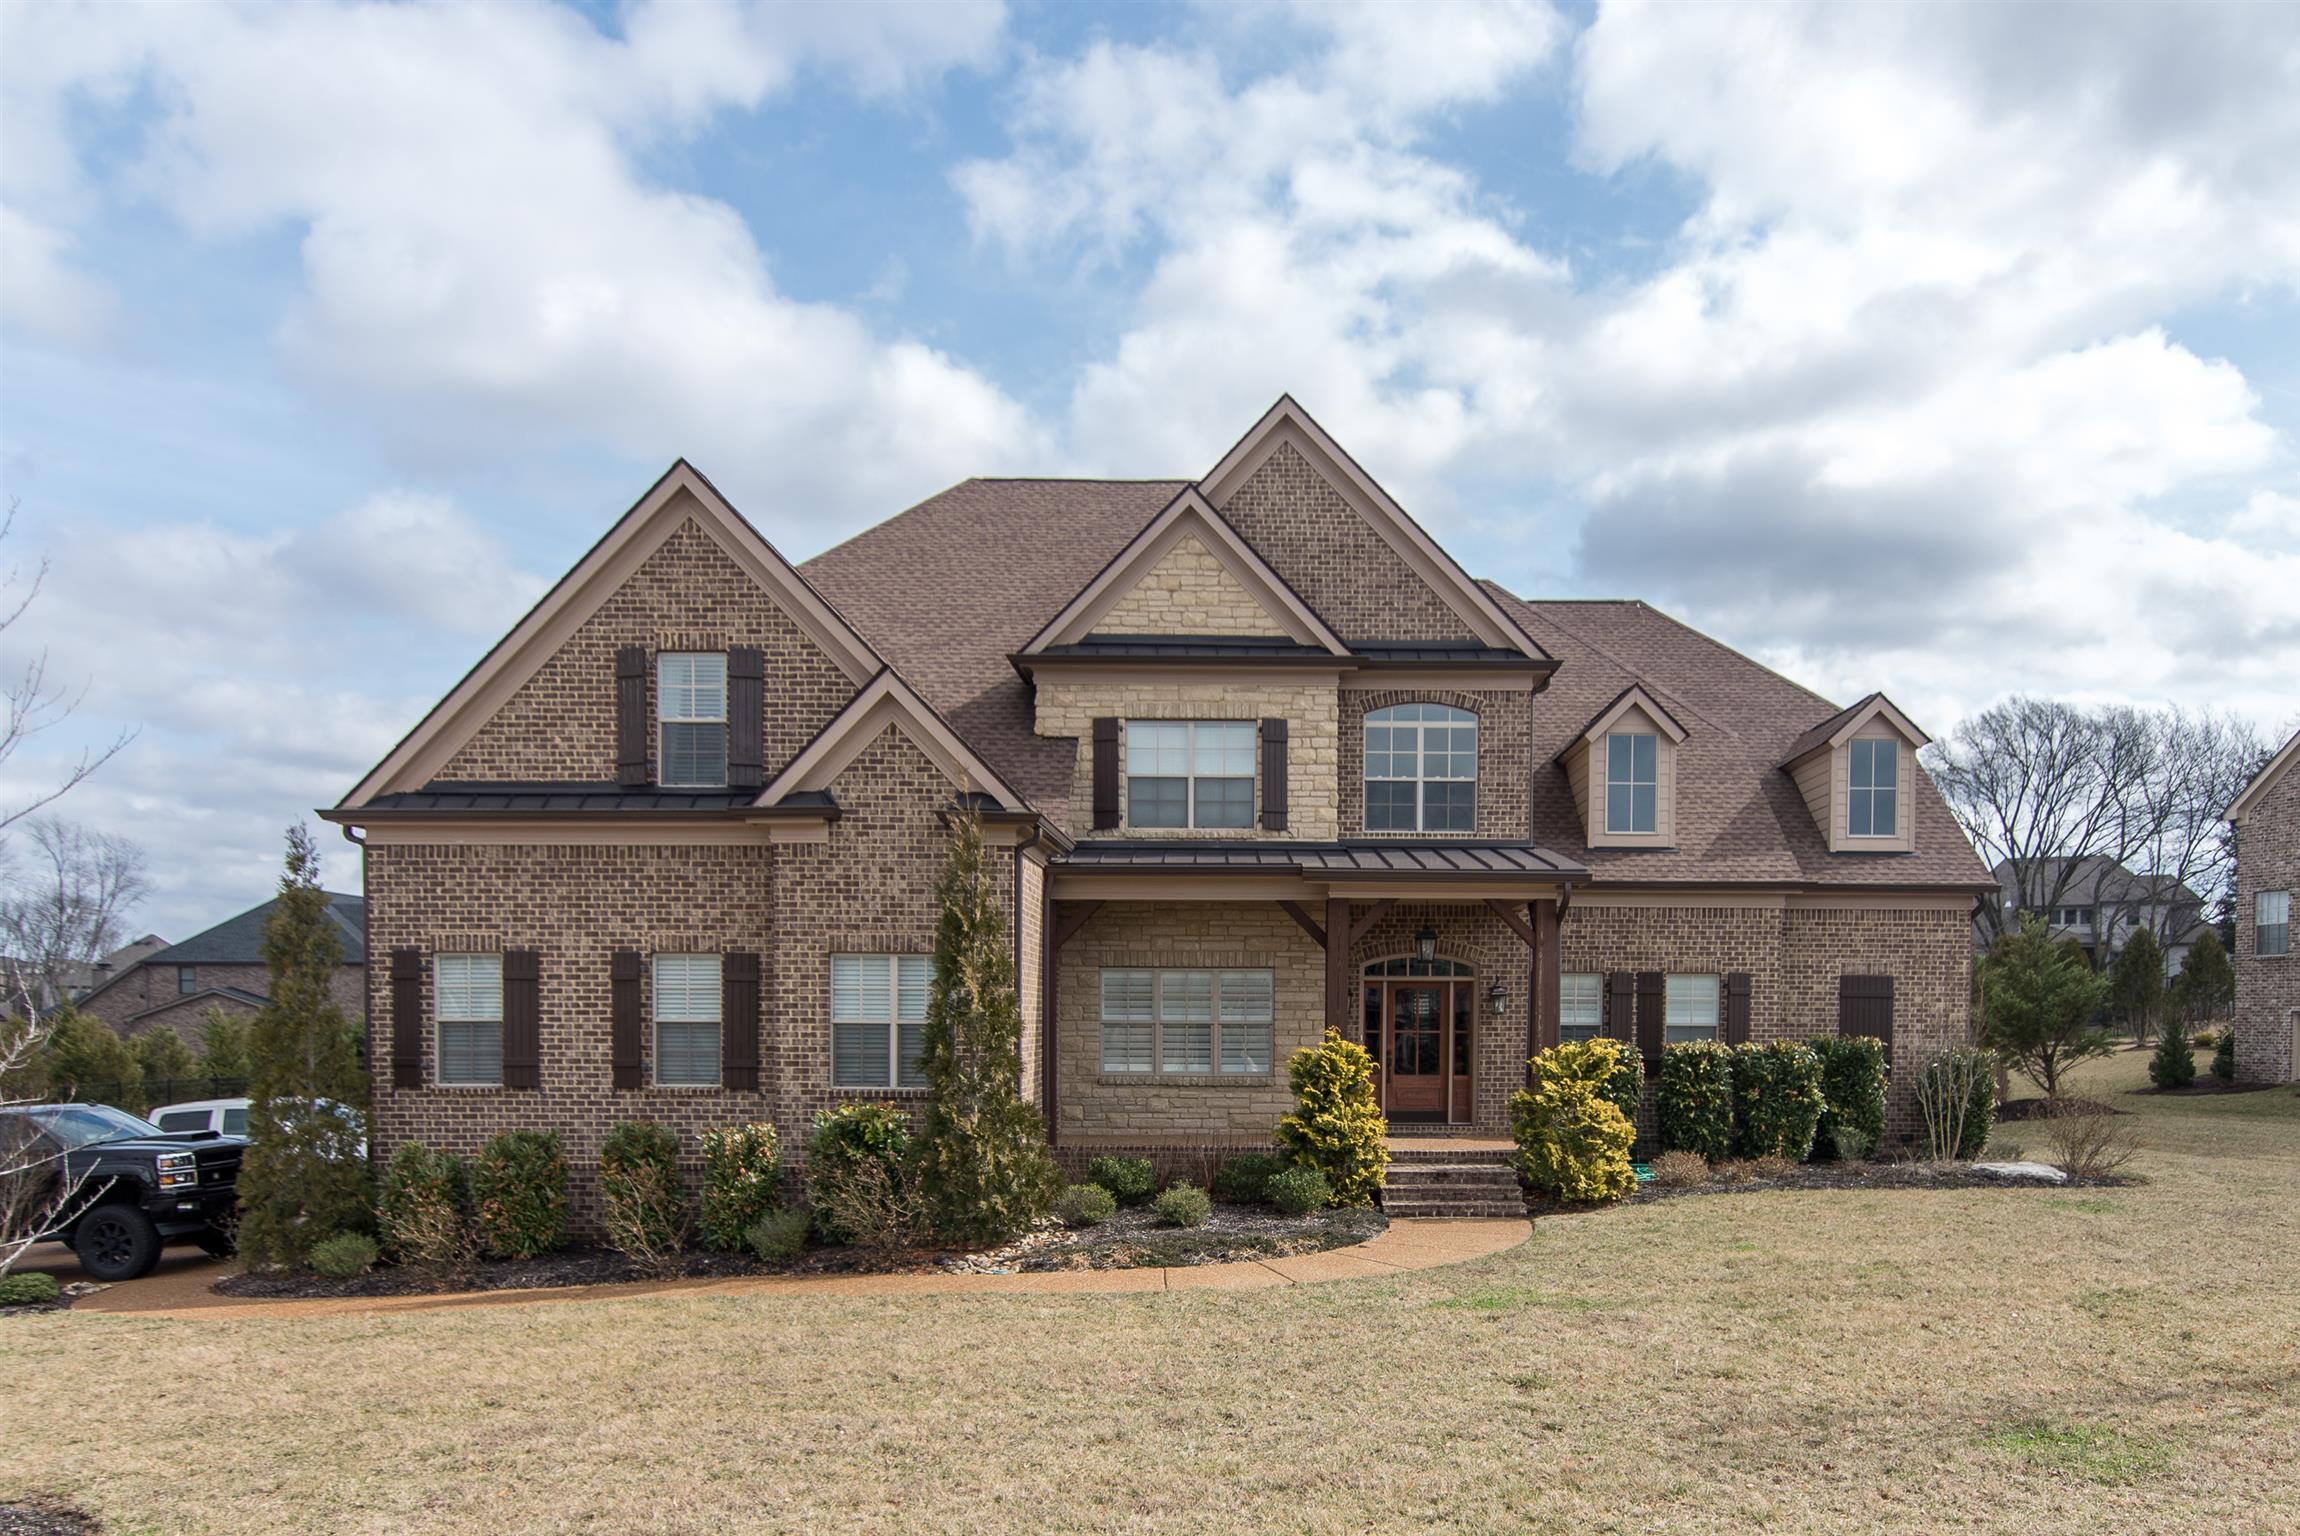 1838 Barnstaple Ln, Brentwood, Tennessee